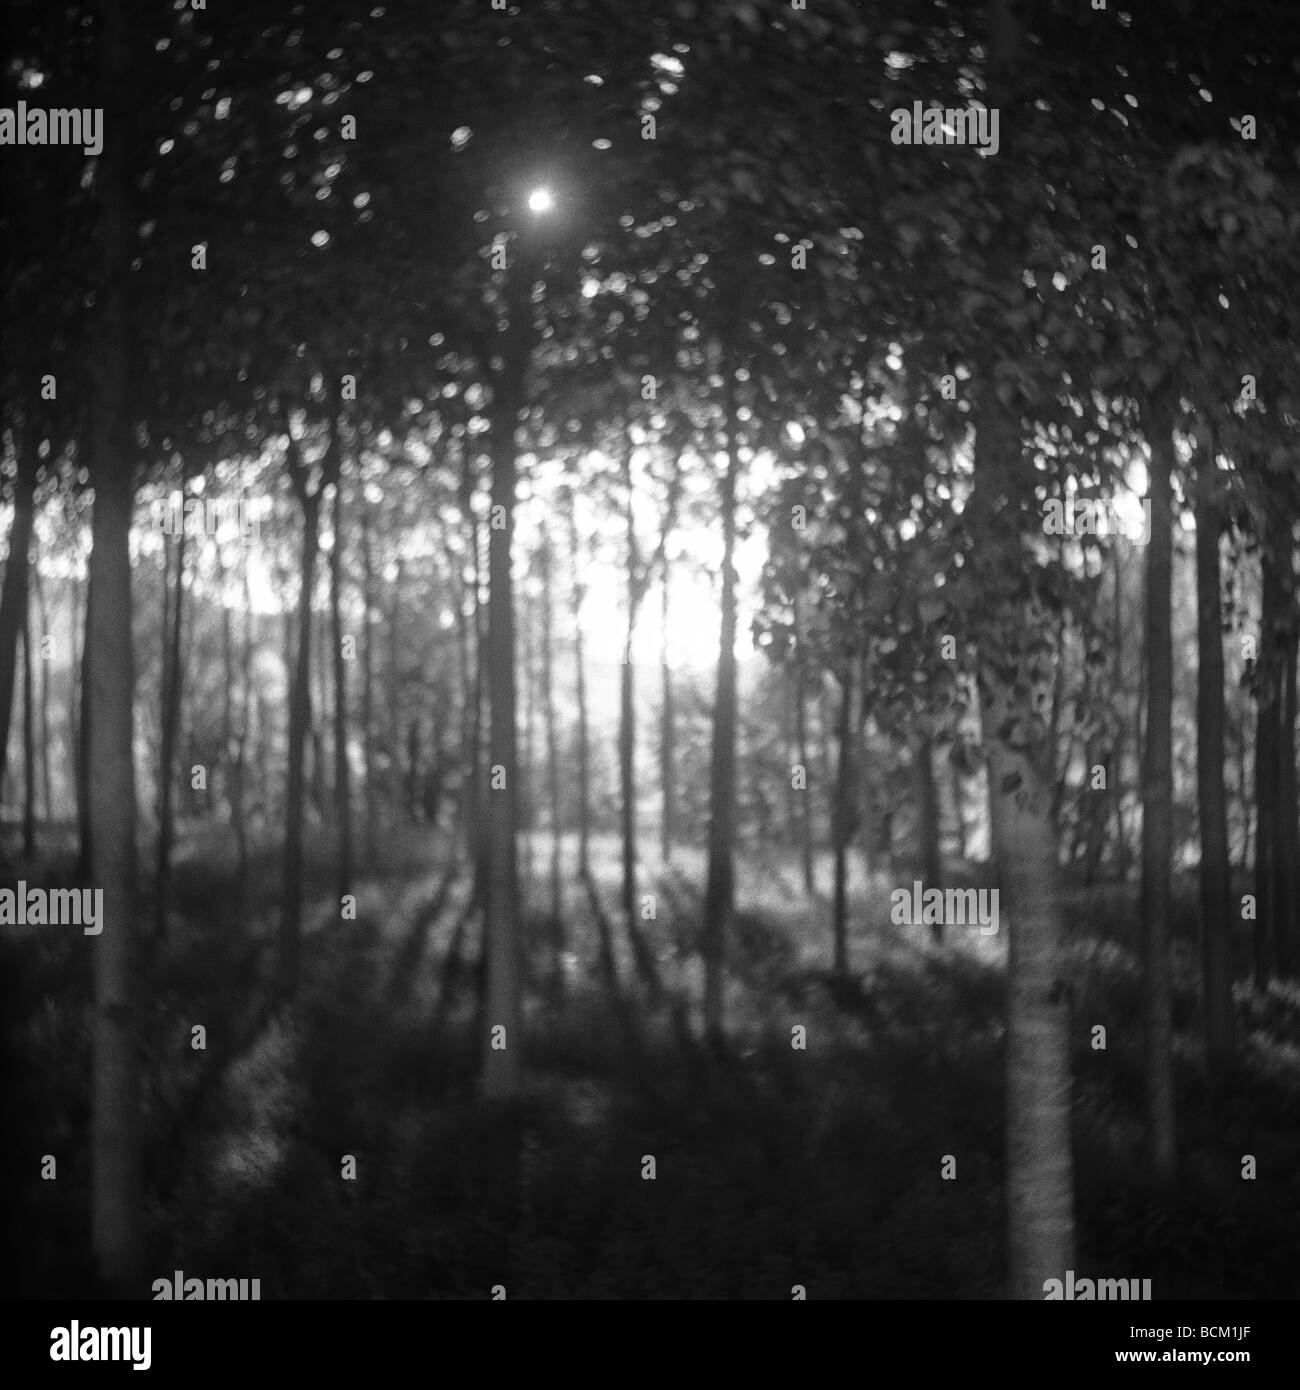 Sunlight shining through woods, black and white - Stock Image